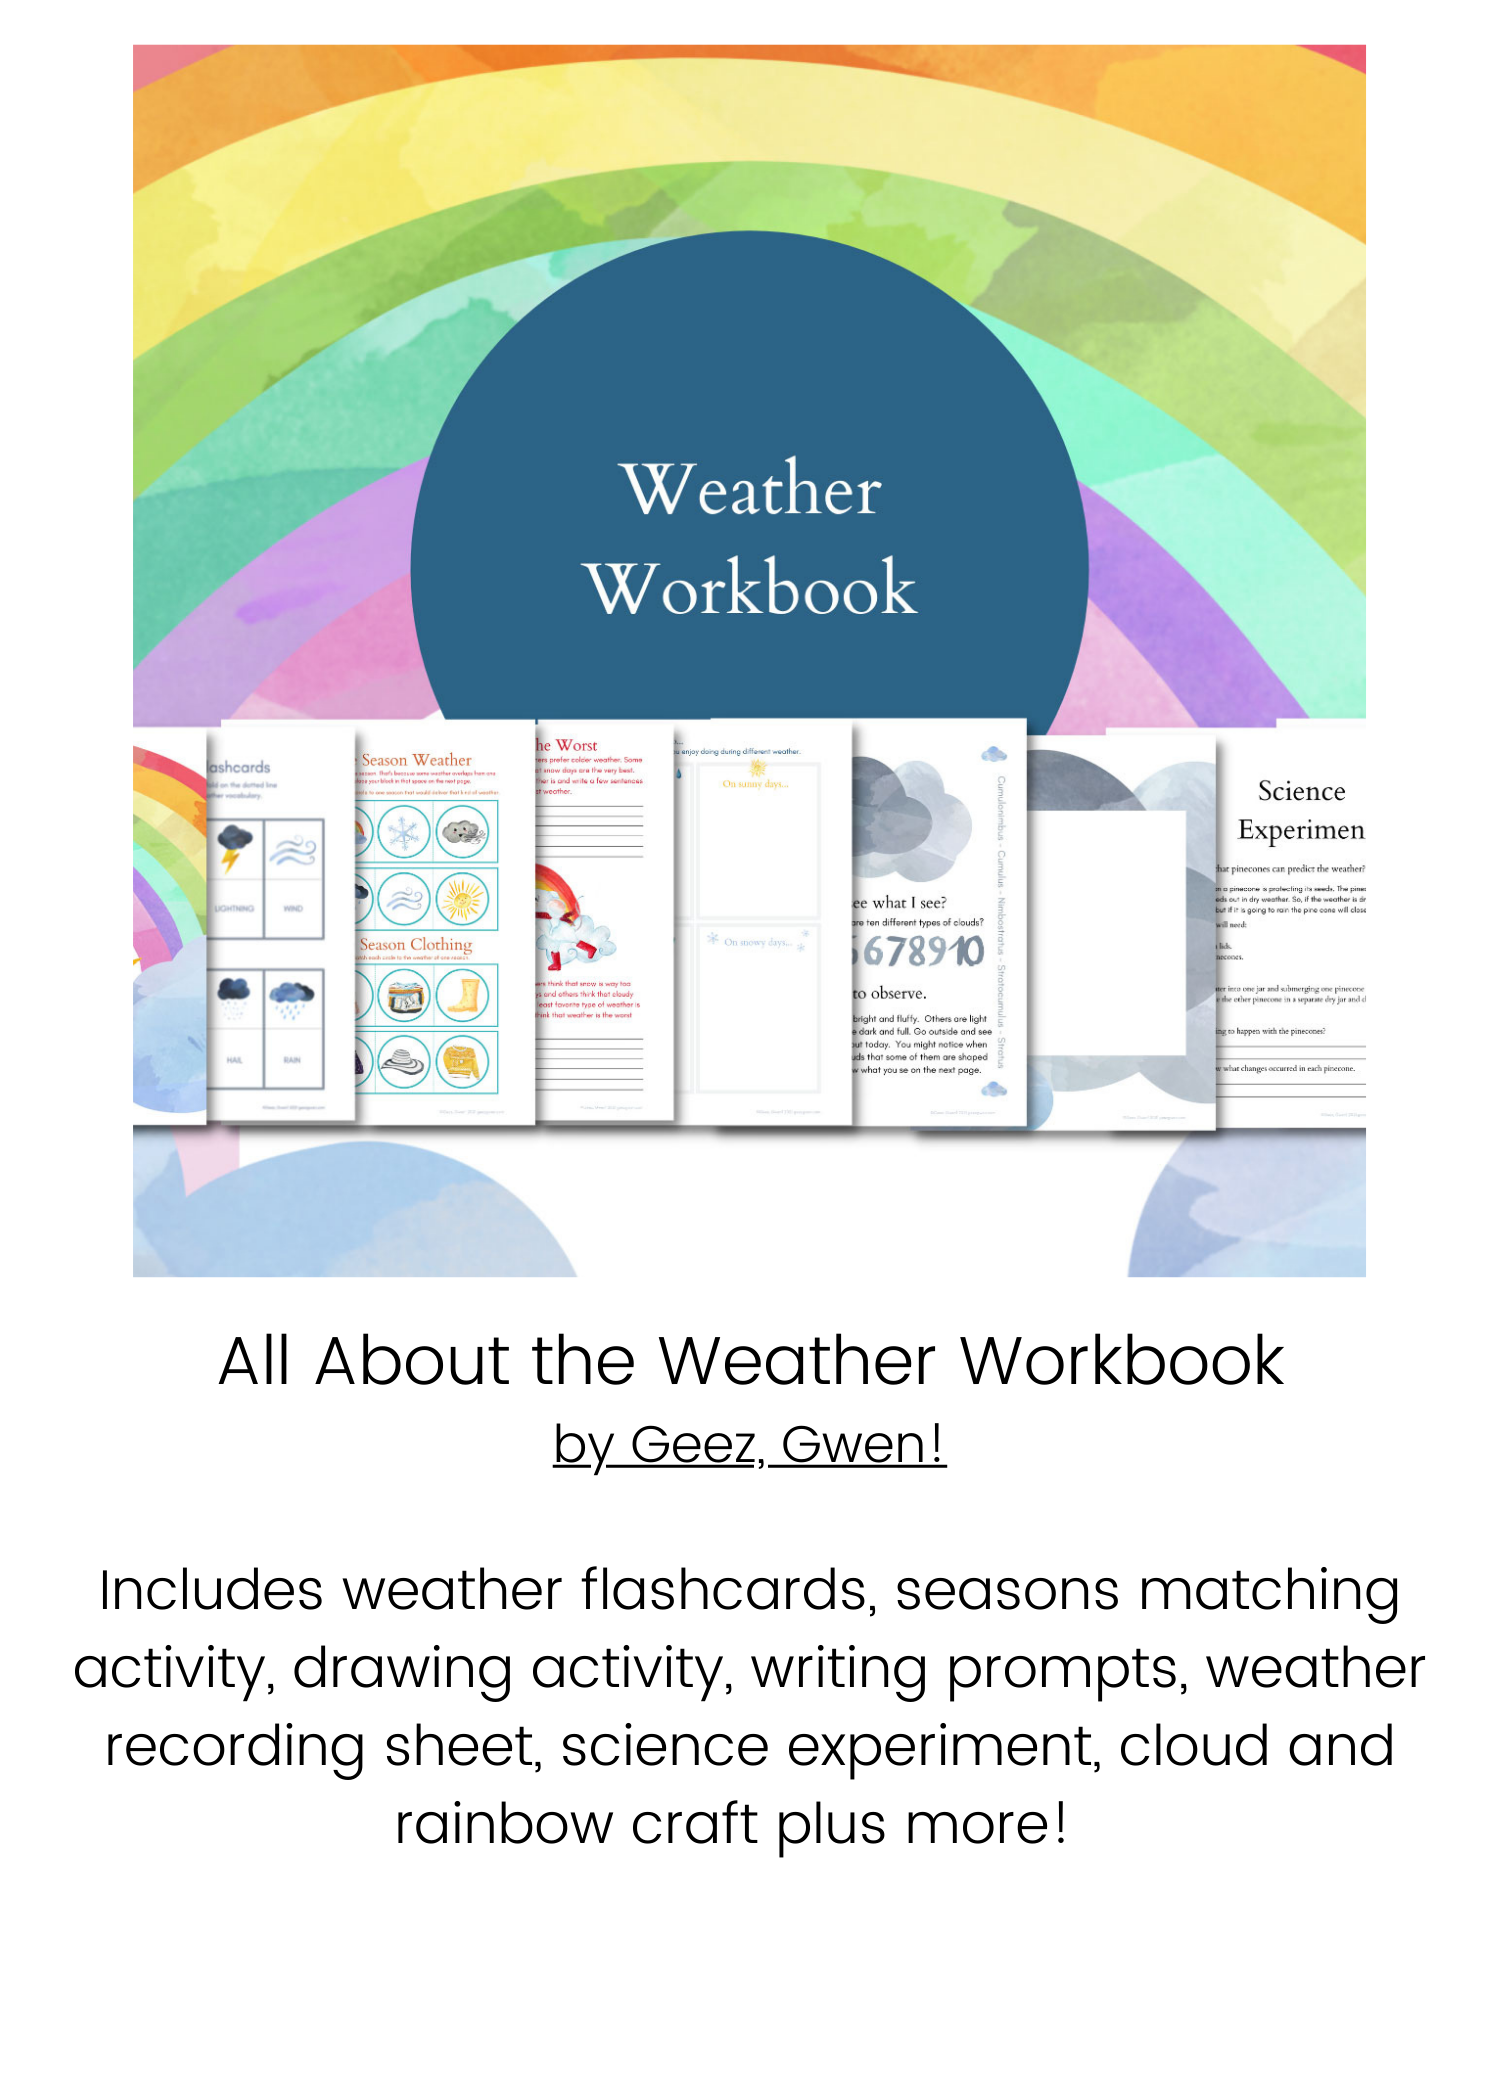 All About the Weather Workbook Bundle Info